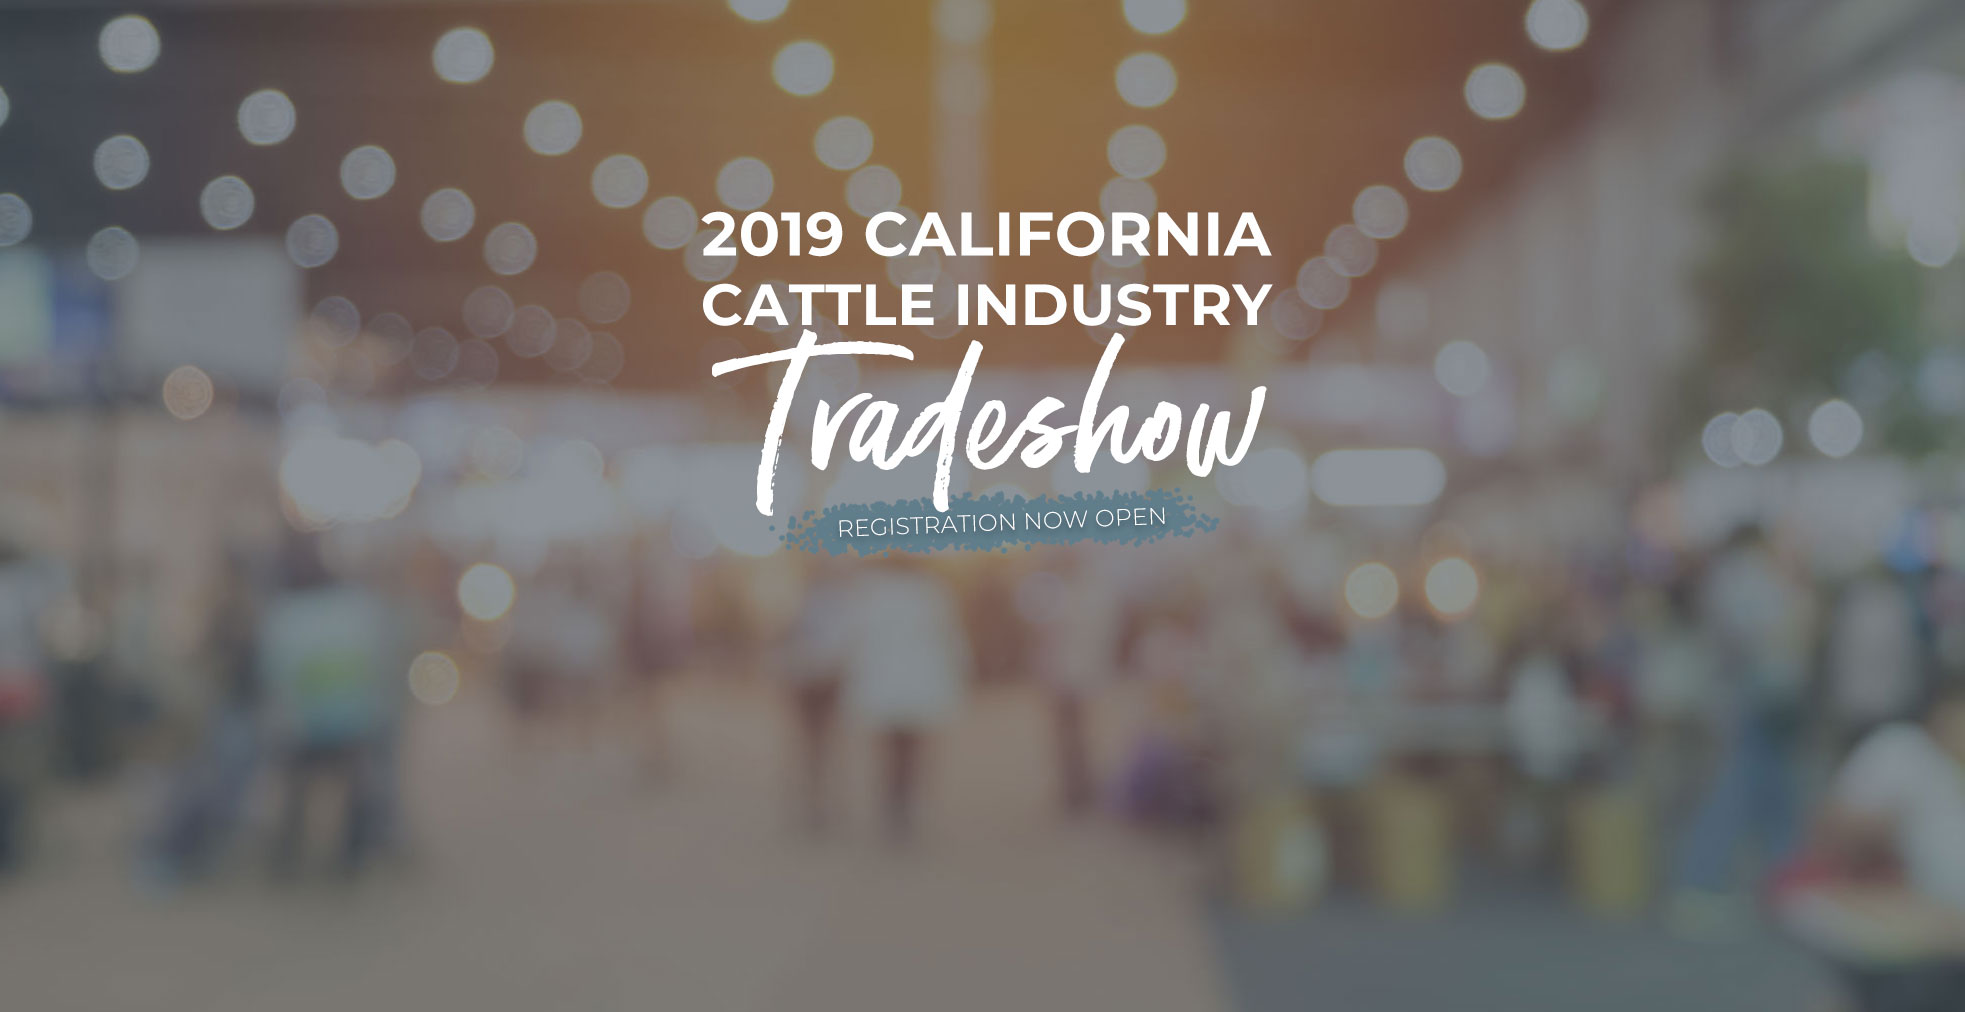 2018 California Cattle Industry Tradeshow registration open